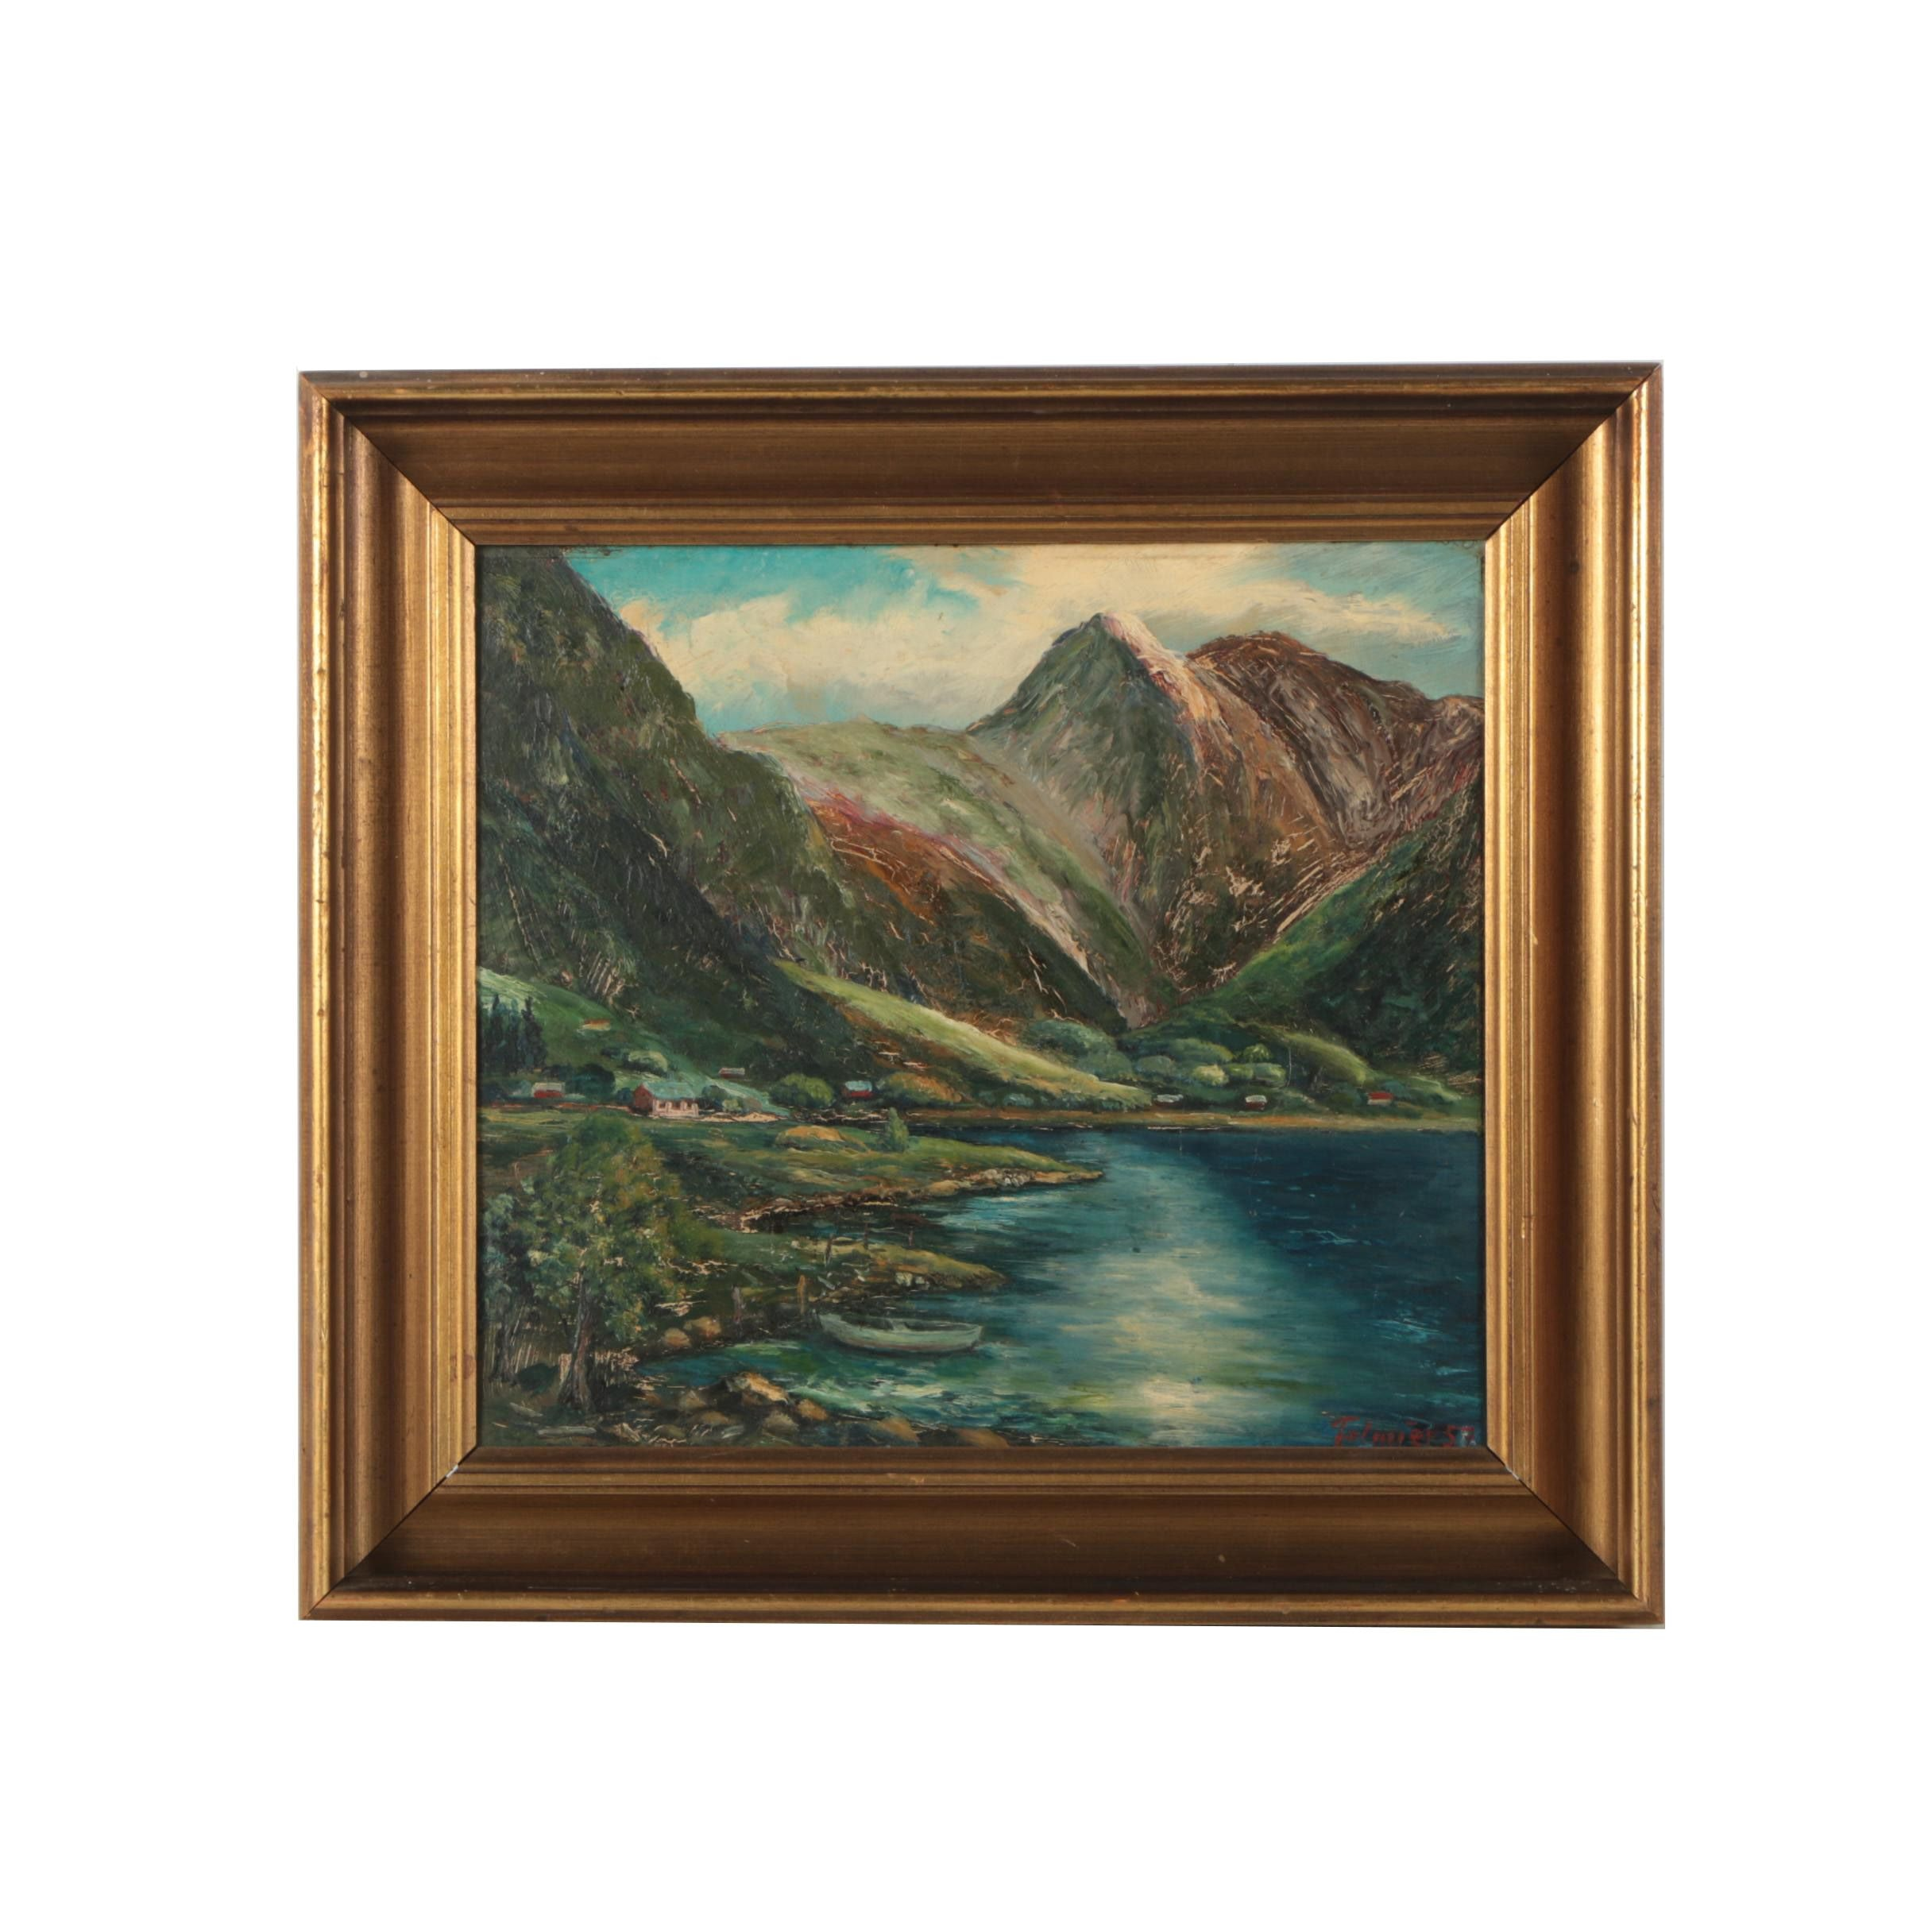 Oil Painting of a Mountain Lake